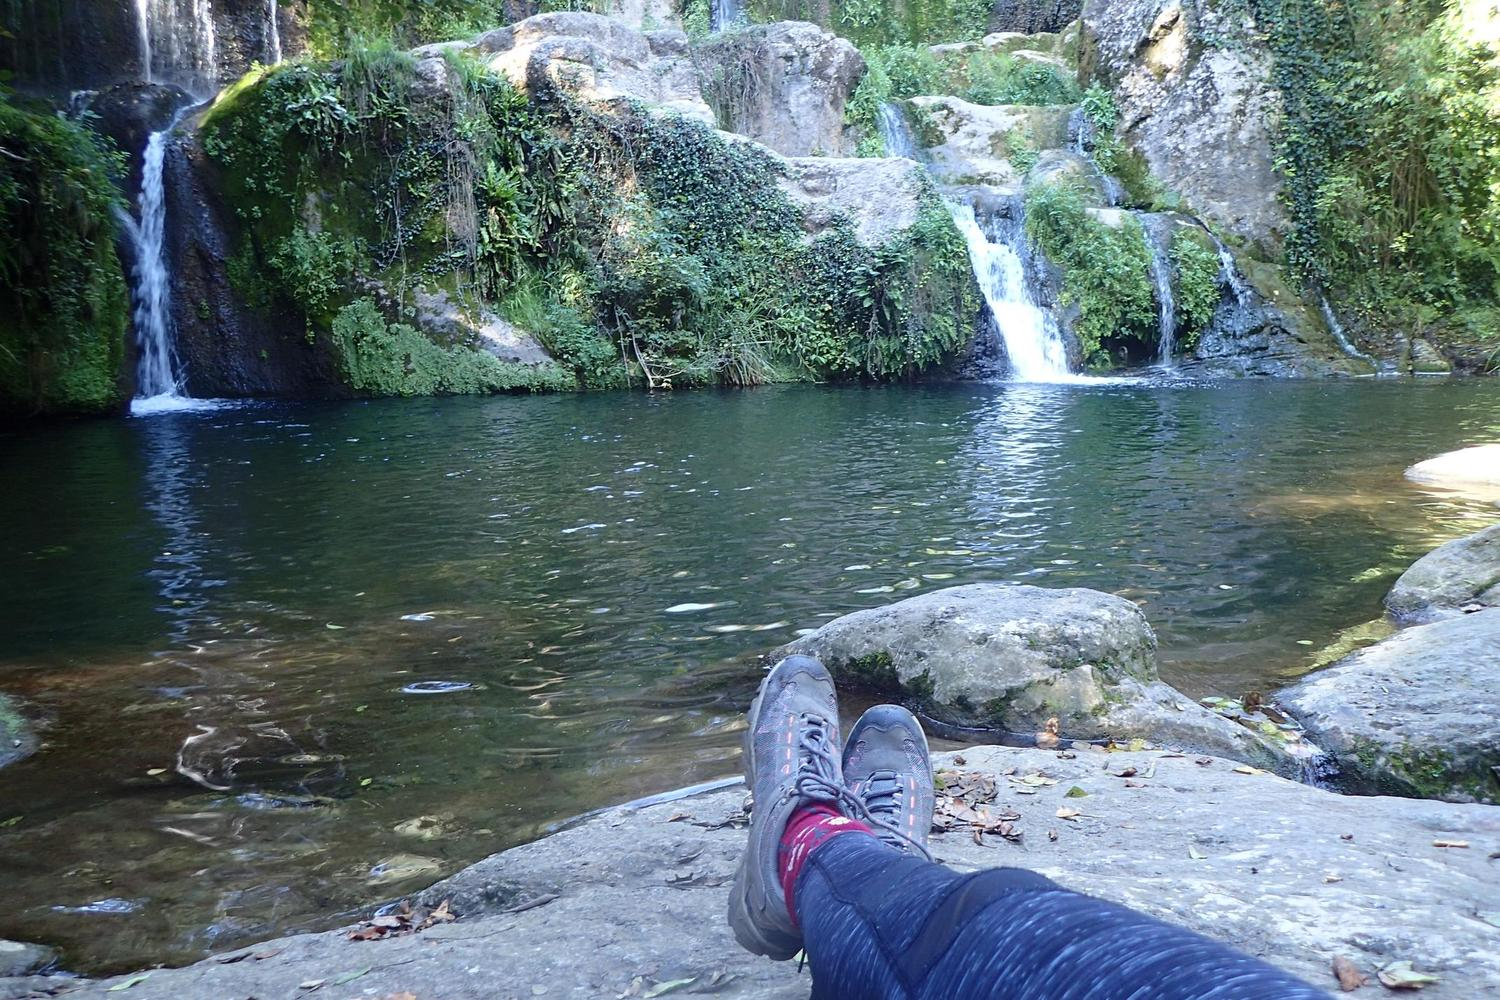 Greta and her boots take a moment to appreciate the Can Batlle Waterfall